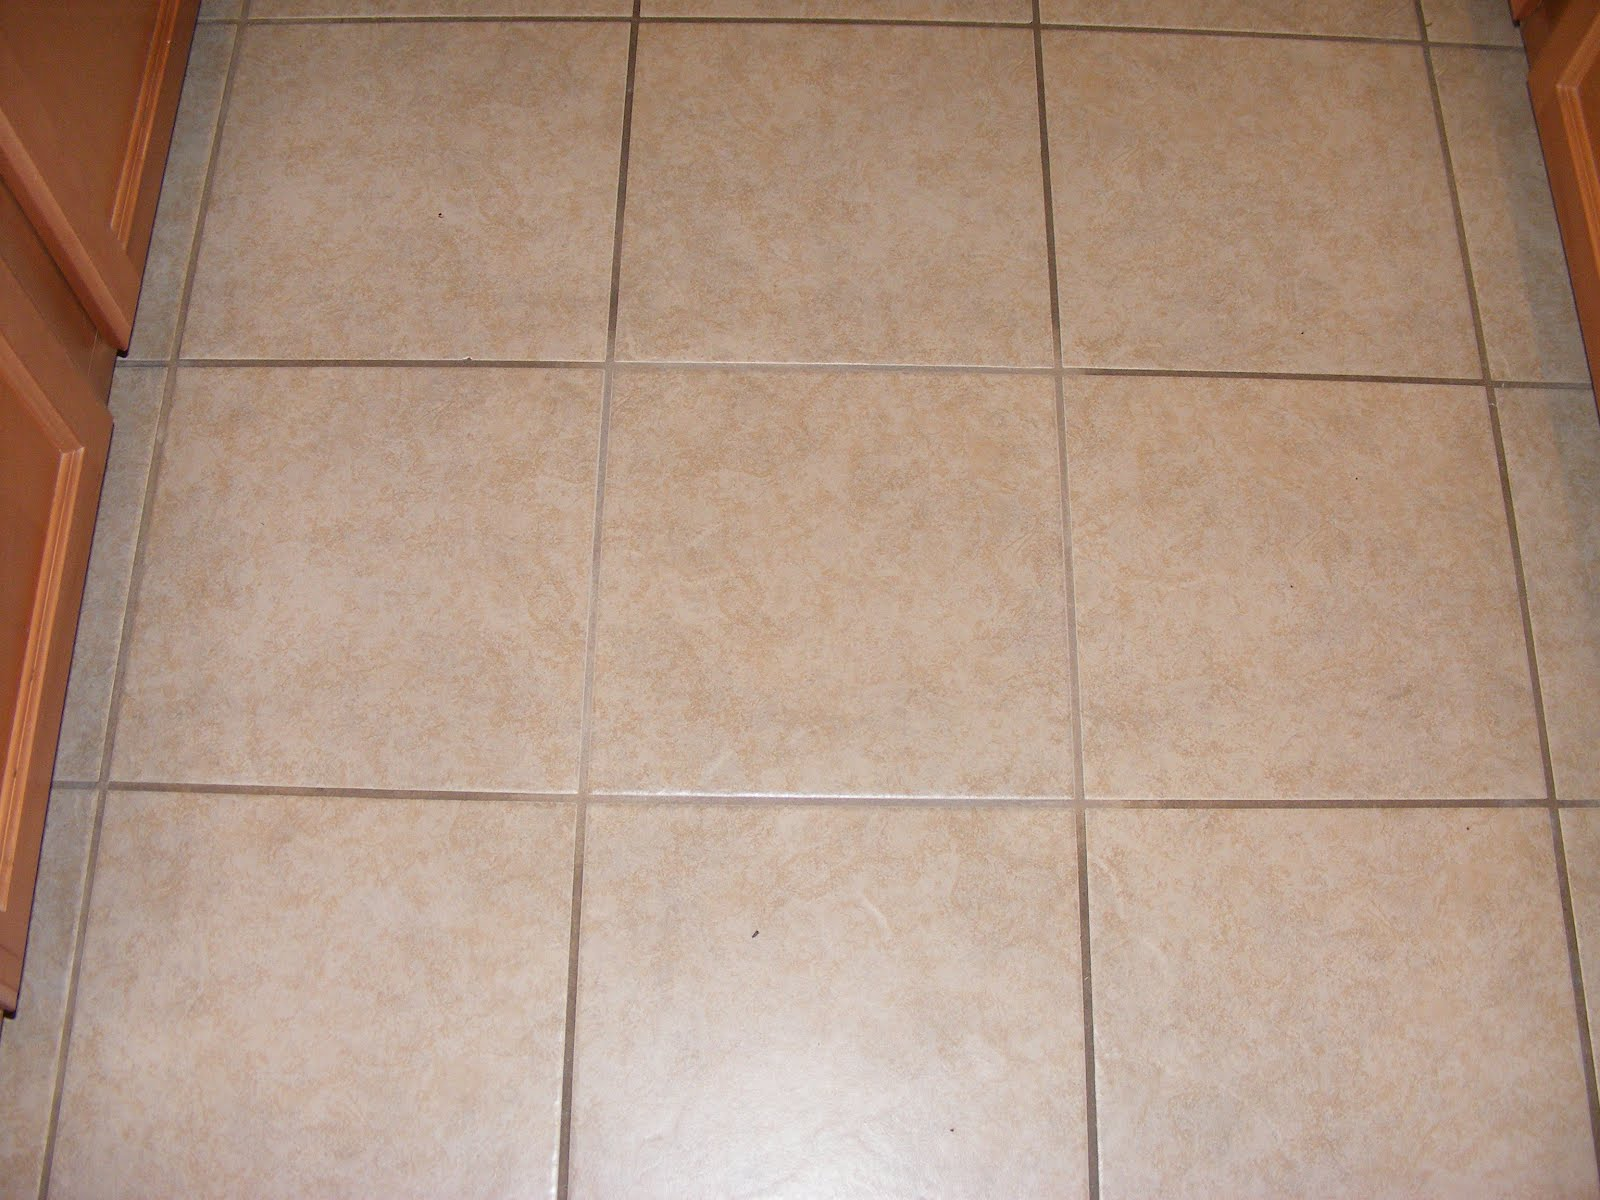 Amazing Grout Cleaner - Best product to clean ceramic tile shower